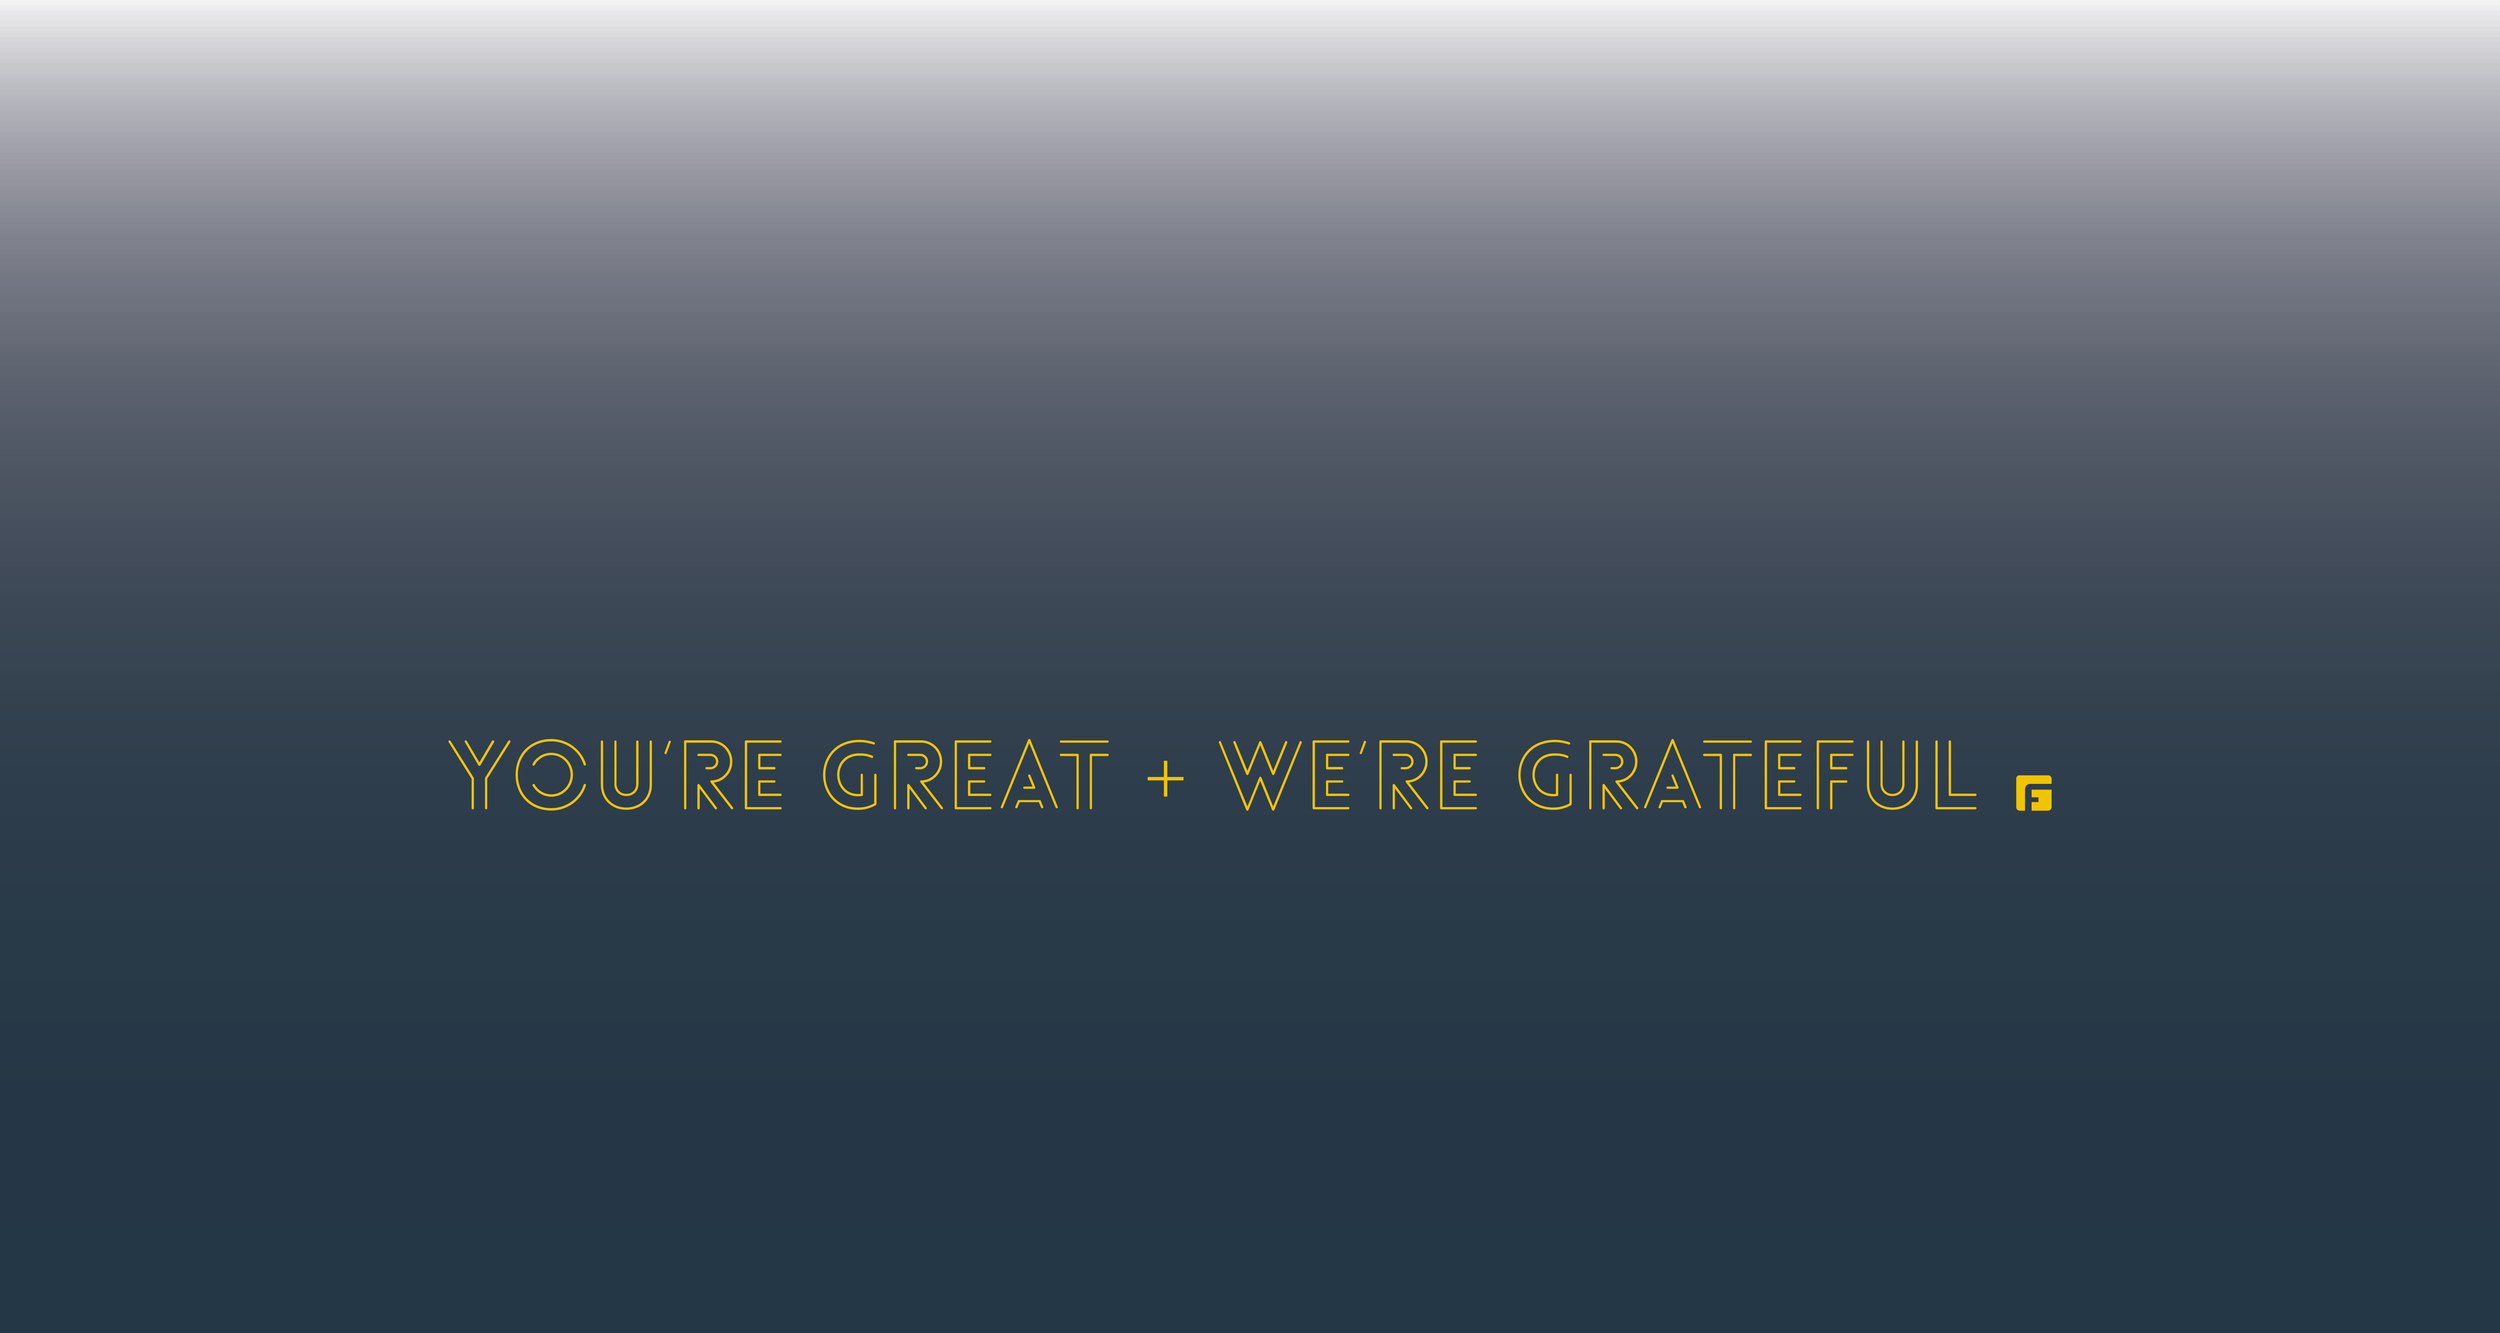 Fournier Group is always very responsive to our needs.